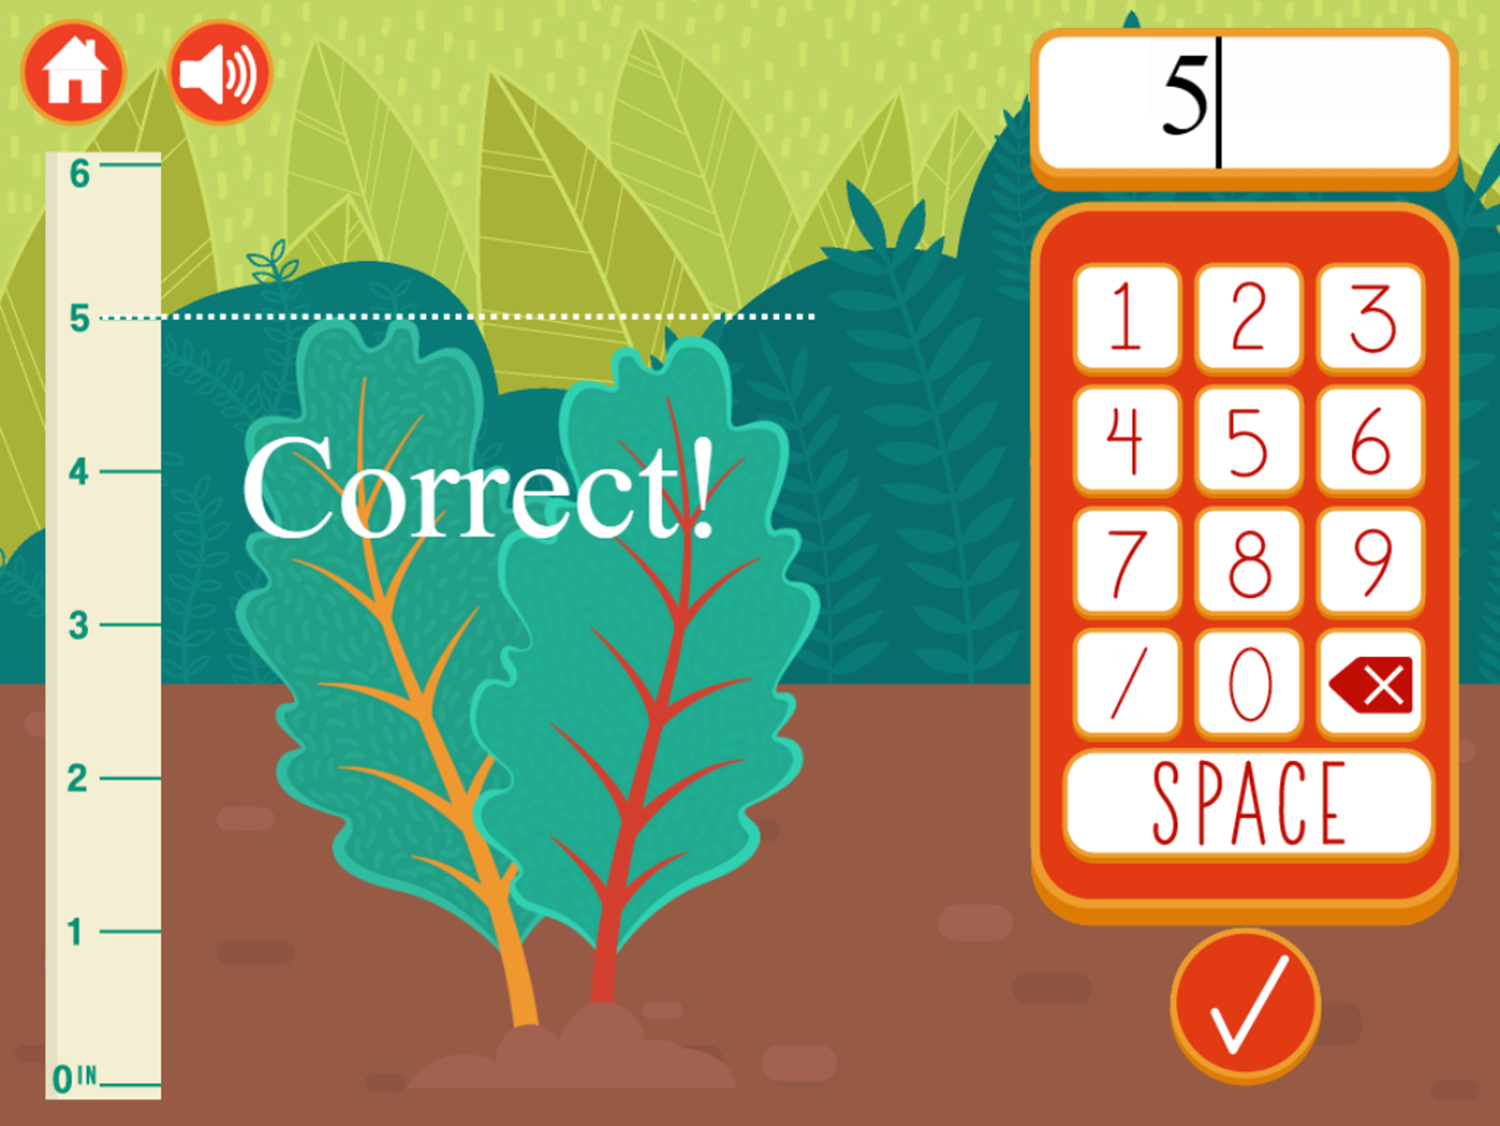 Strolling With My Gnomies a Measurement Game Correct Answer Screenshot.